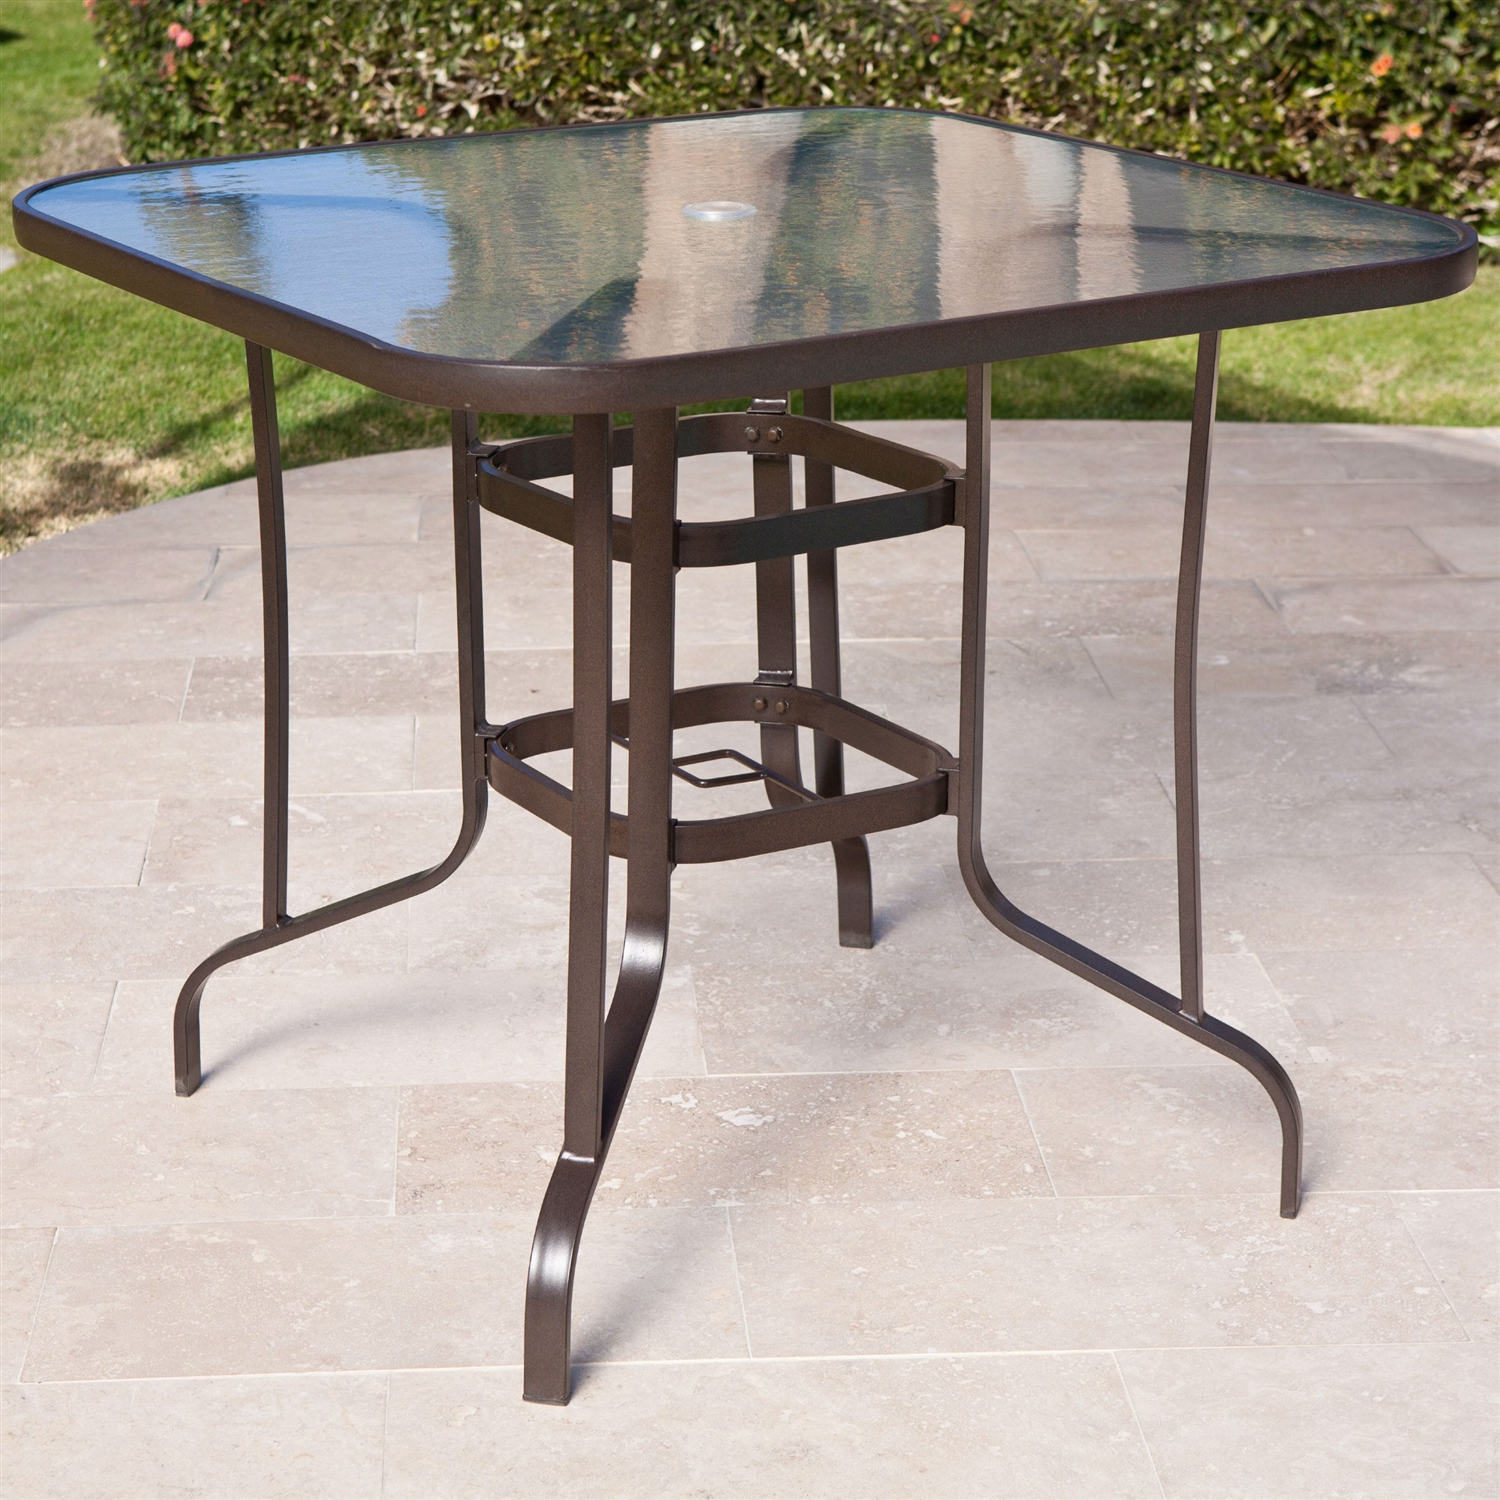 Outdoor round dining table - 40 Inch Outdoor Patio Dining Table With Glass Top And Umbrella Hole